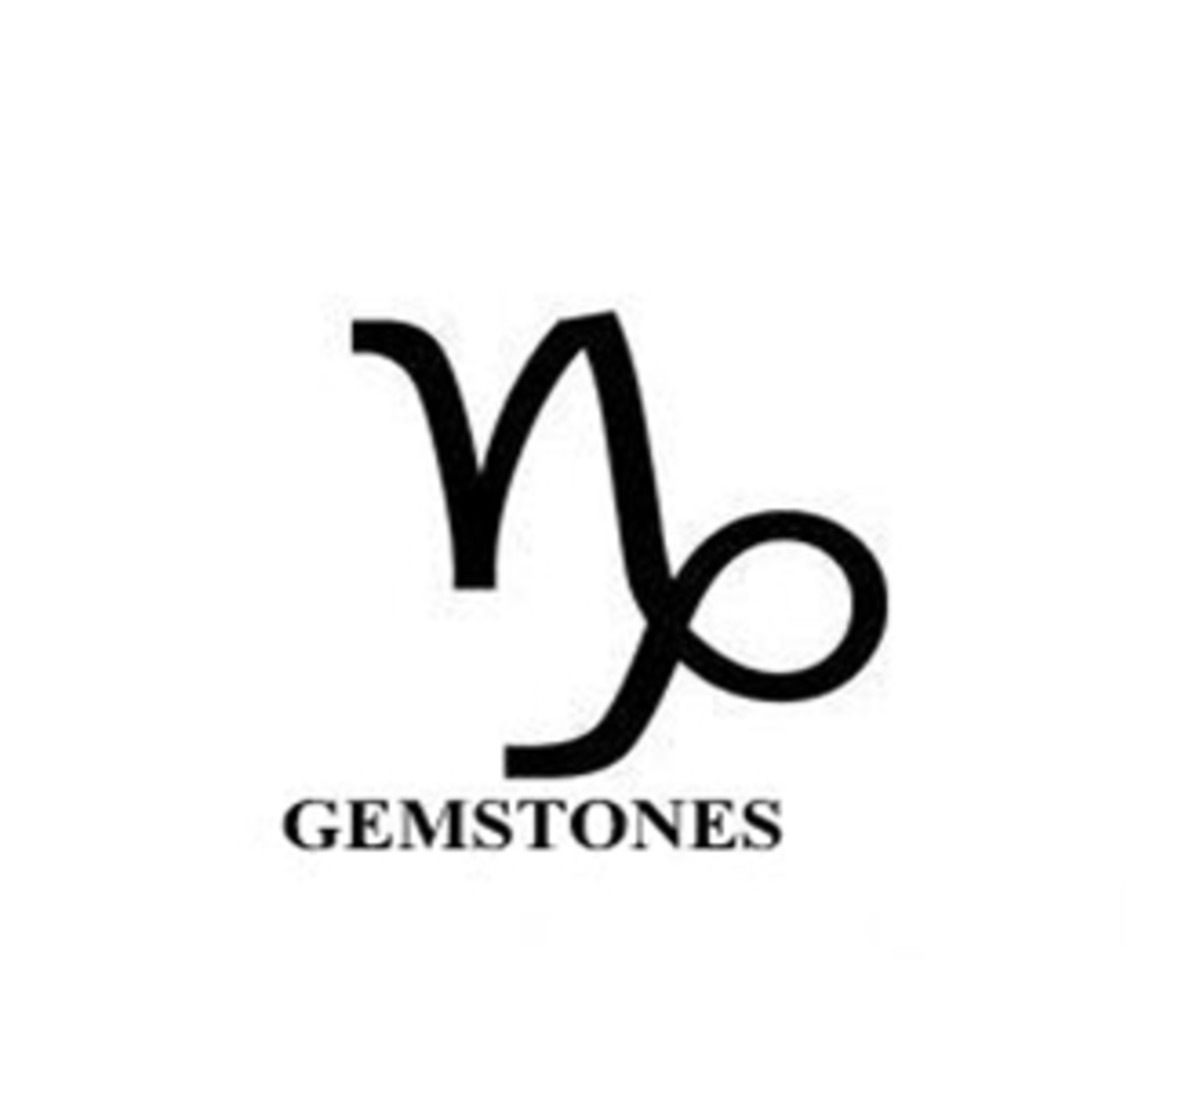 Capricorn Gemstones